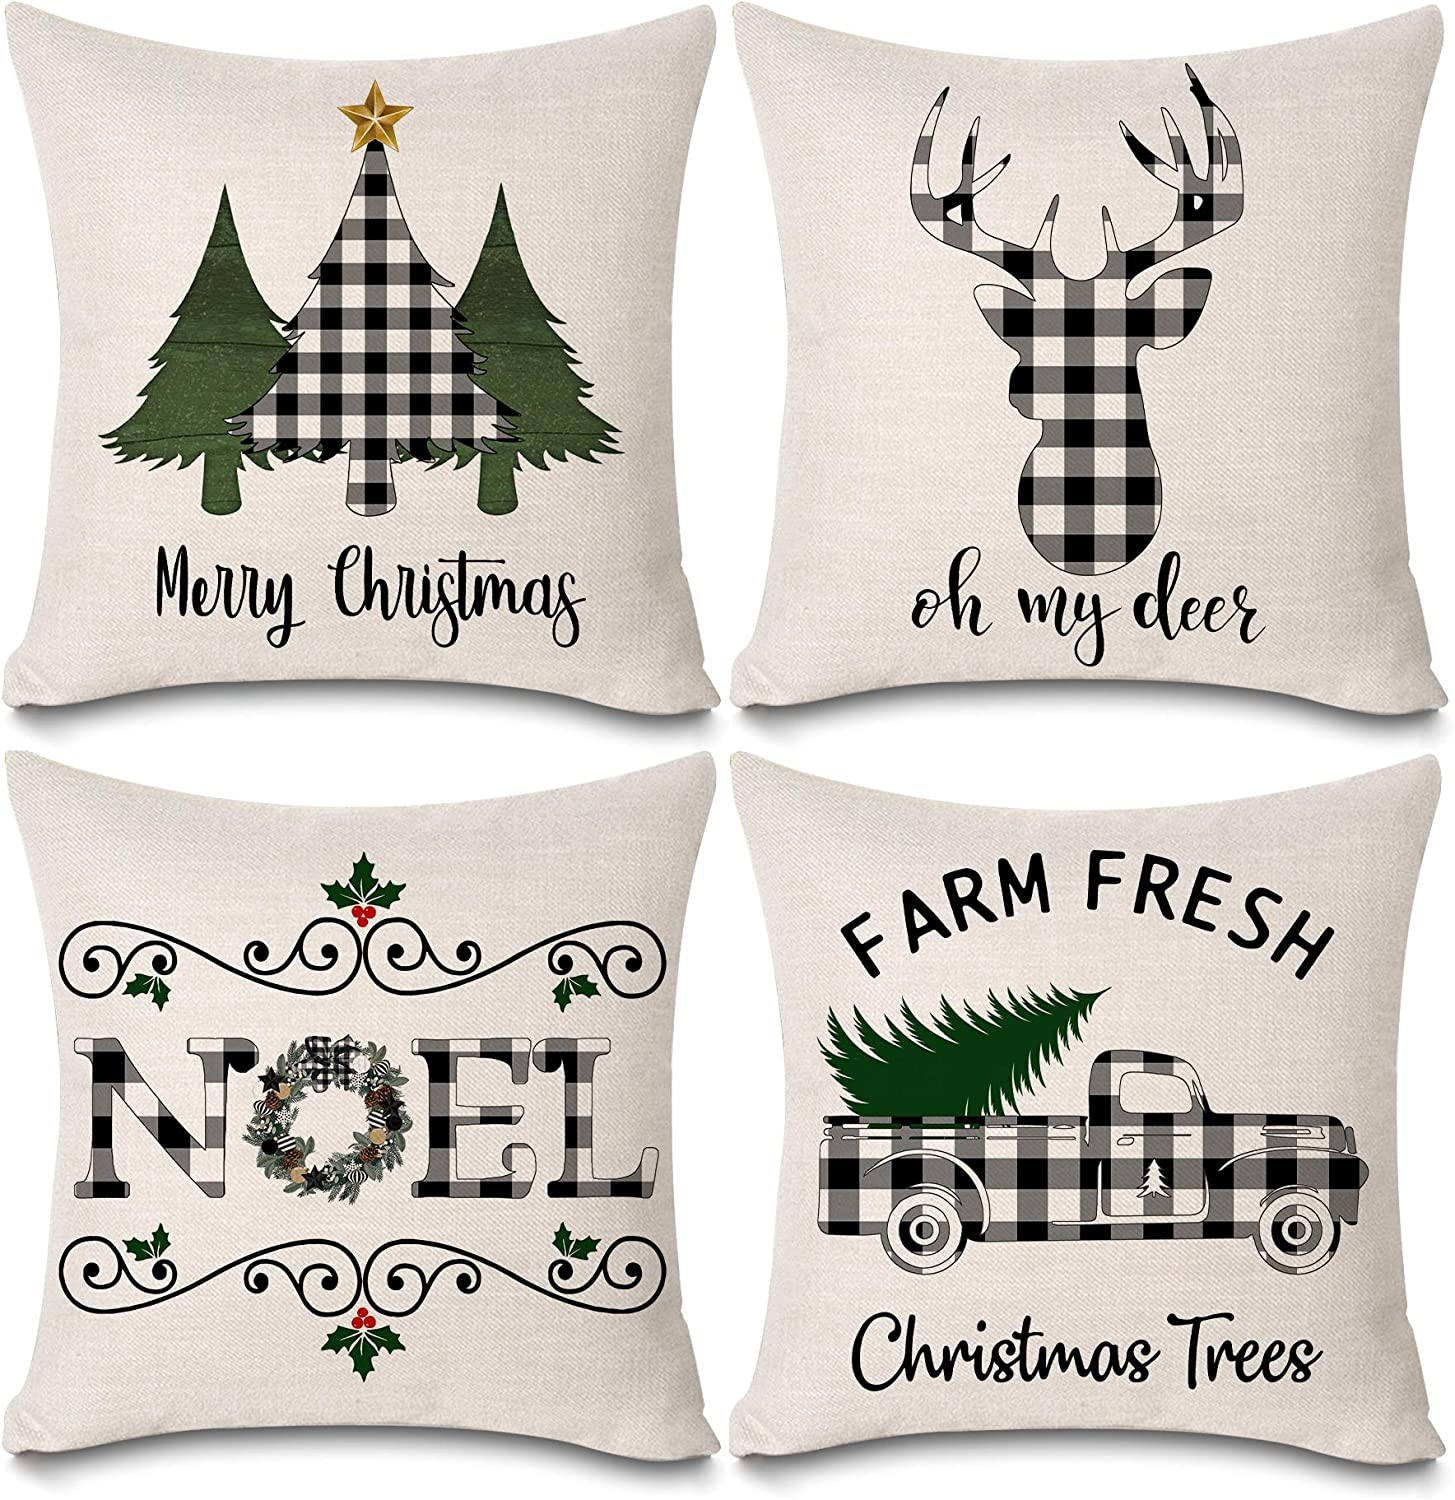 "KACOPOL Christmas Buffalo Plaids Deer Christmas Tree Farmhouse Truck Noel Pillow Covers Cotton Linen Throw Pillow Case Cushion Cover 18"" X 18"" Set of 4 Christmas Decorations (4 Pack Christmas Plaids)"